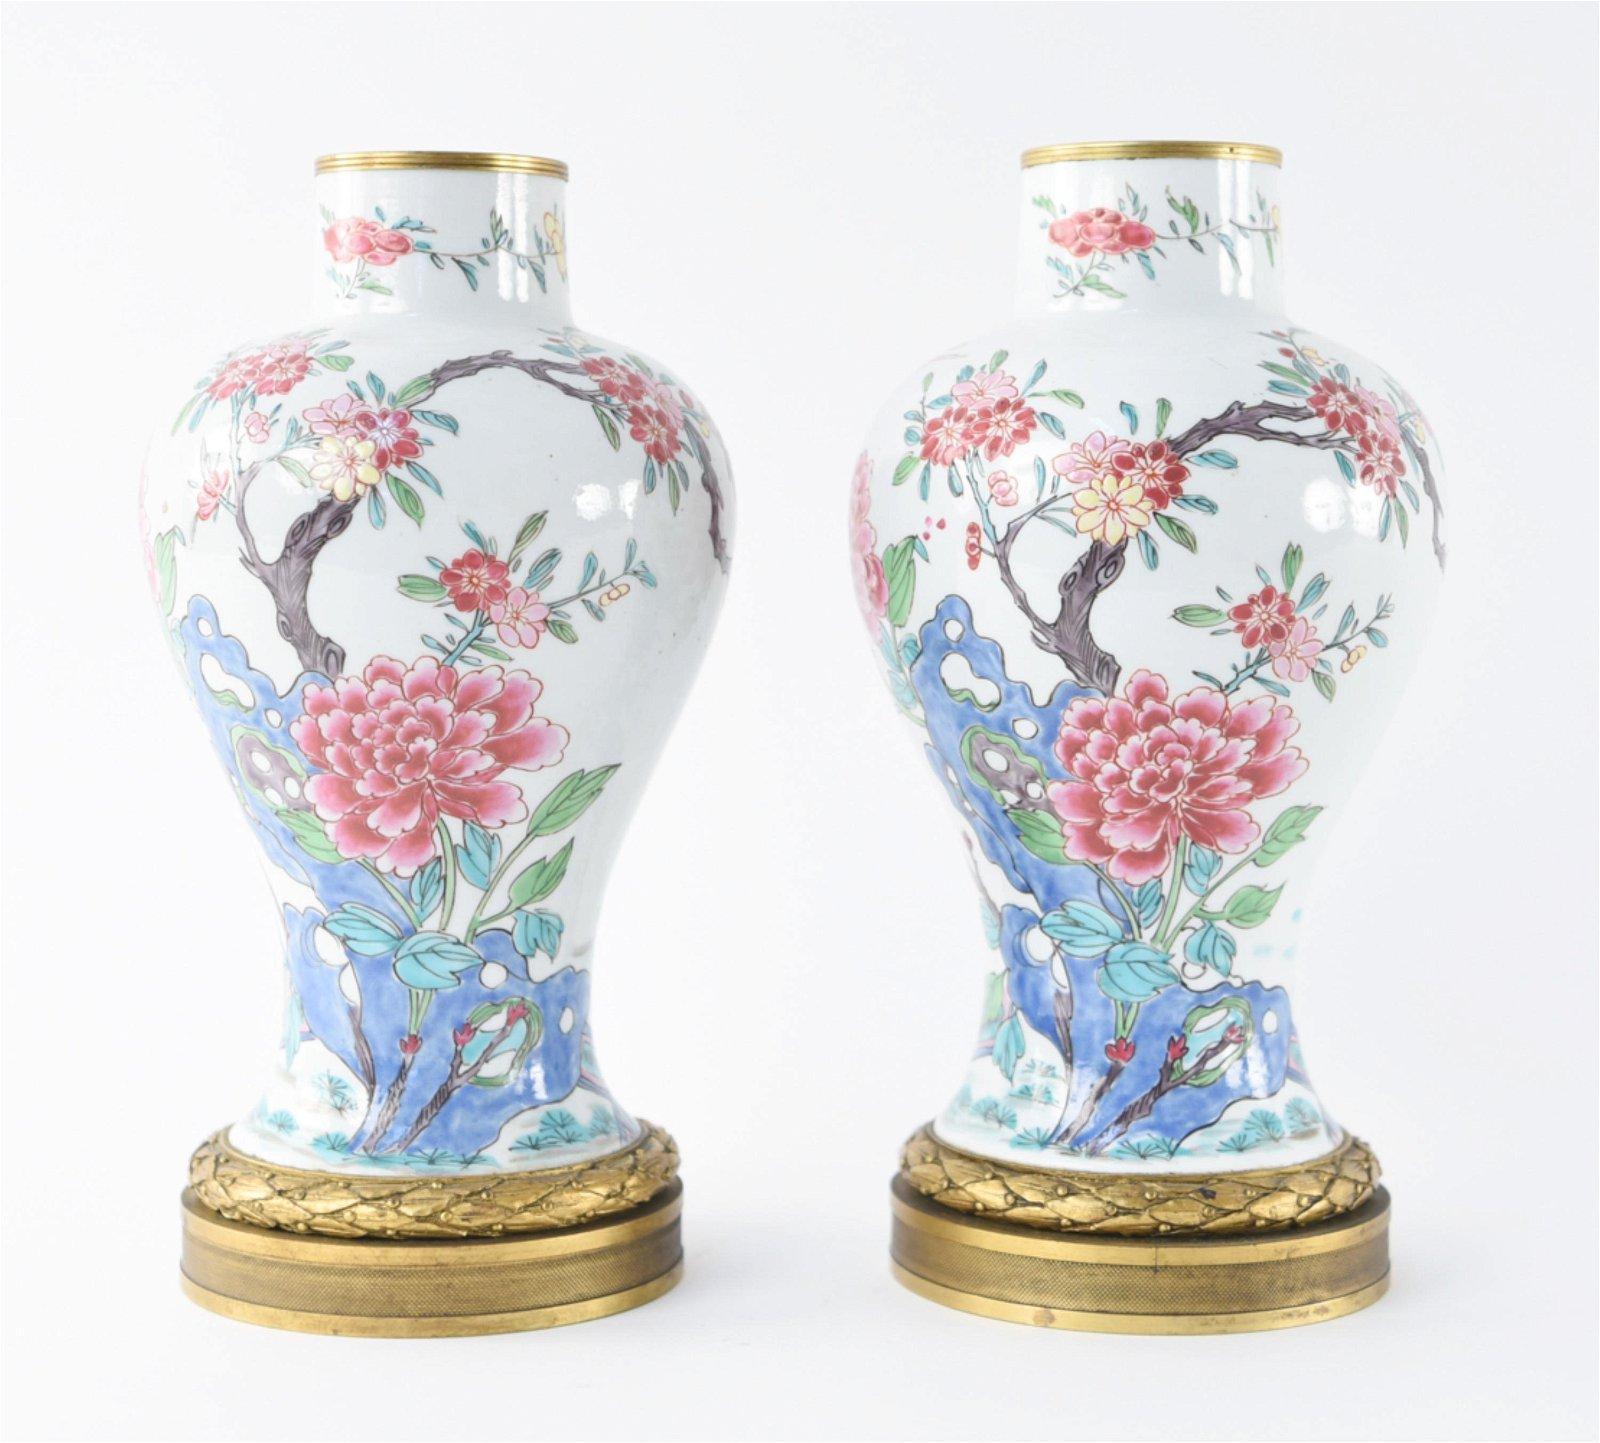 PAIR OF EARLY 19TH C. CHINESE PORCELAIN VASES